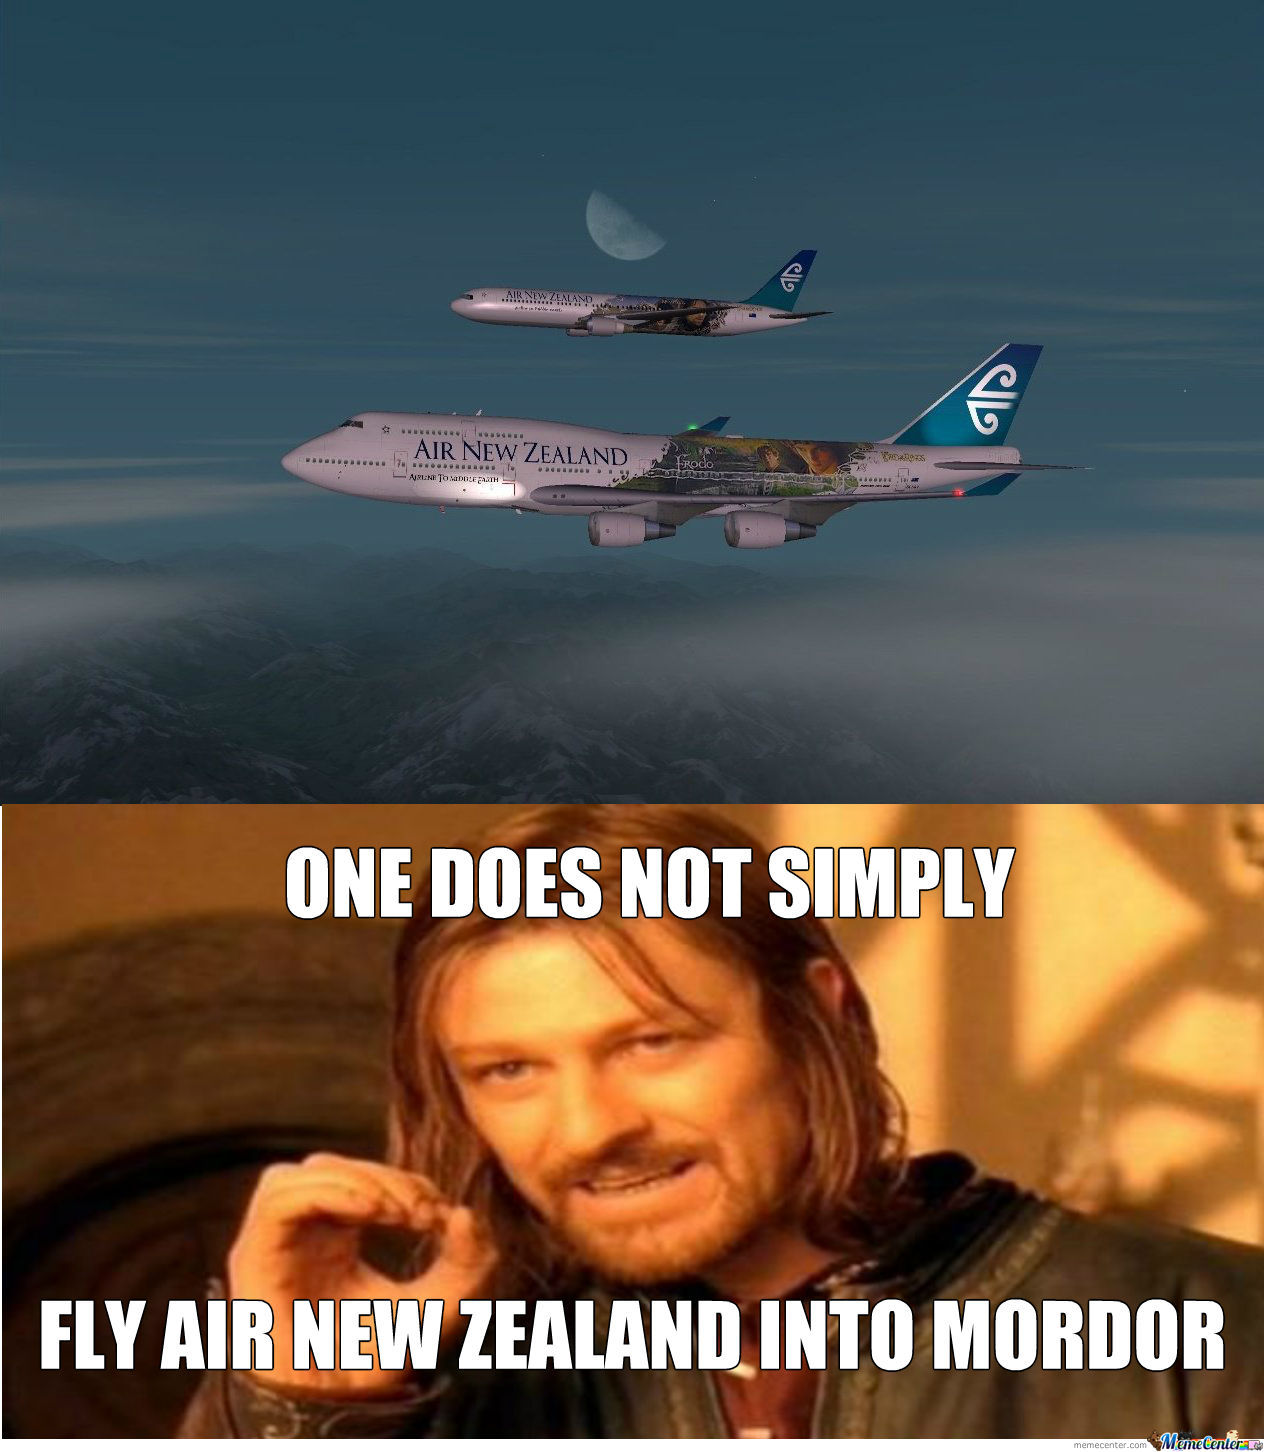 Then How The Hell Do You Get To Mordor Then?